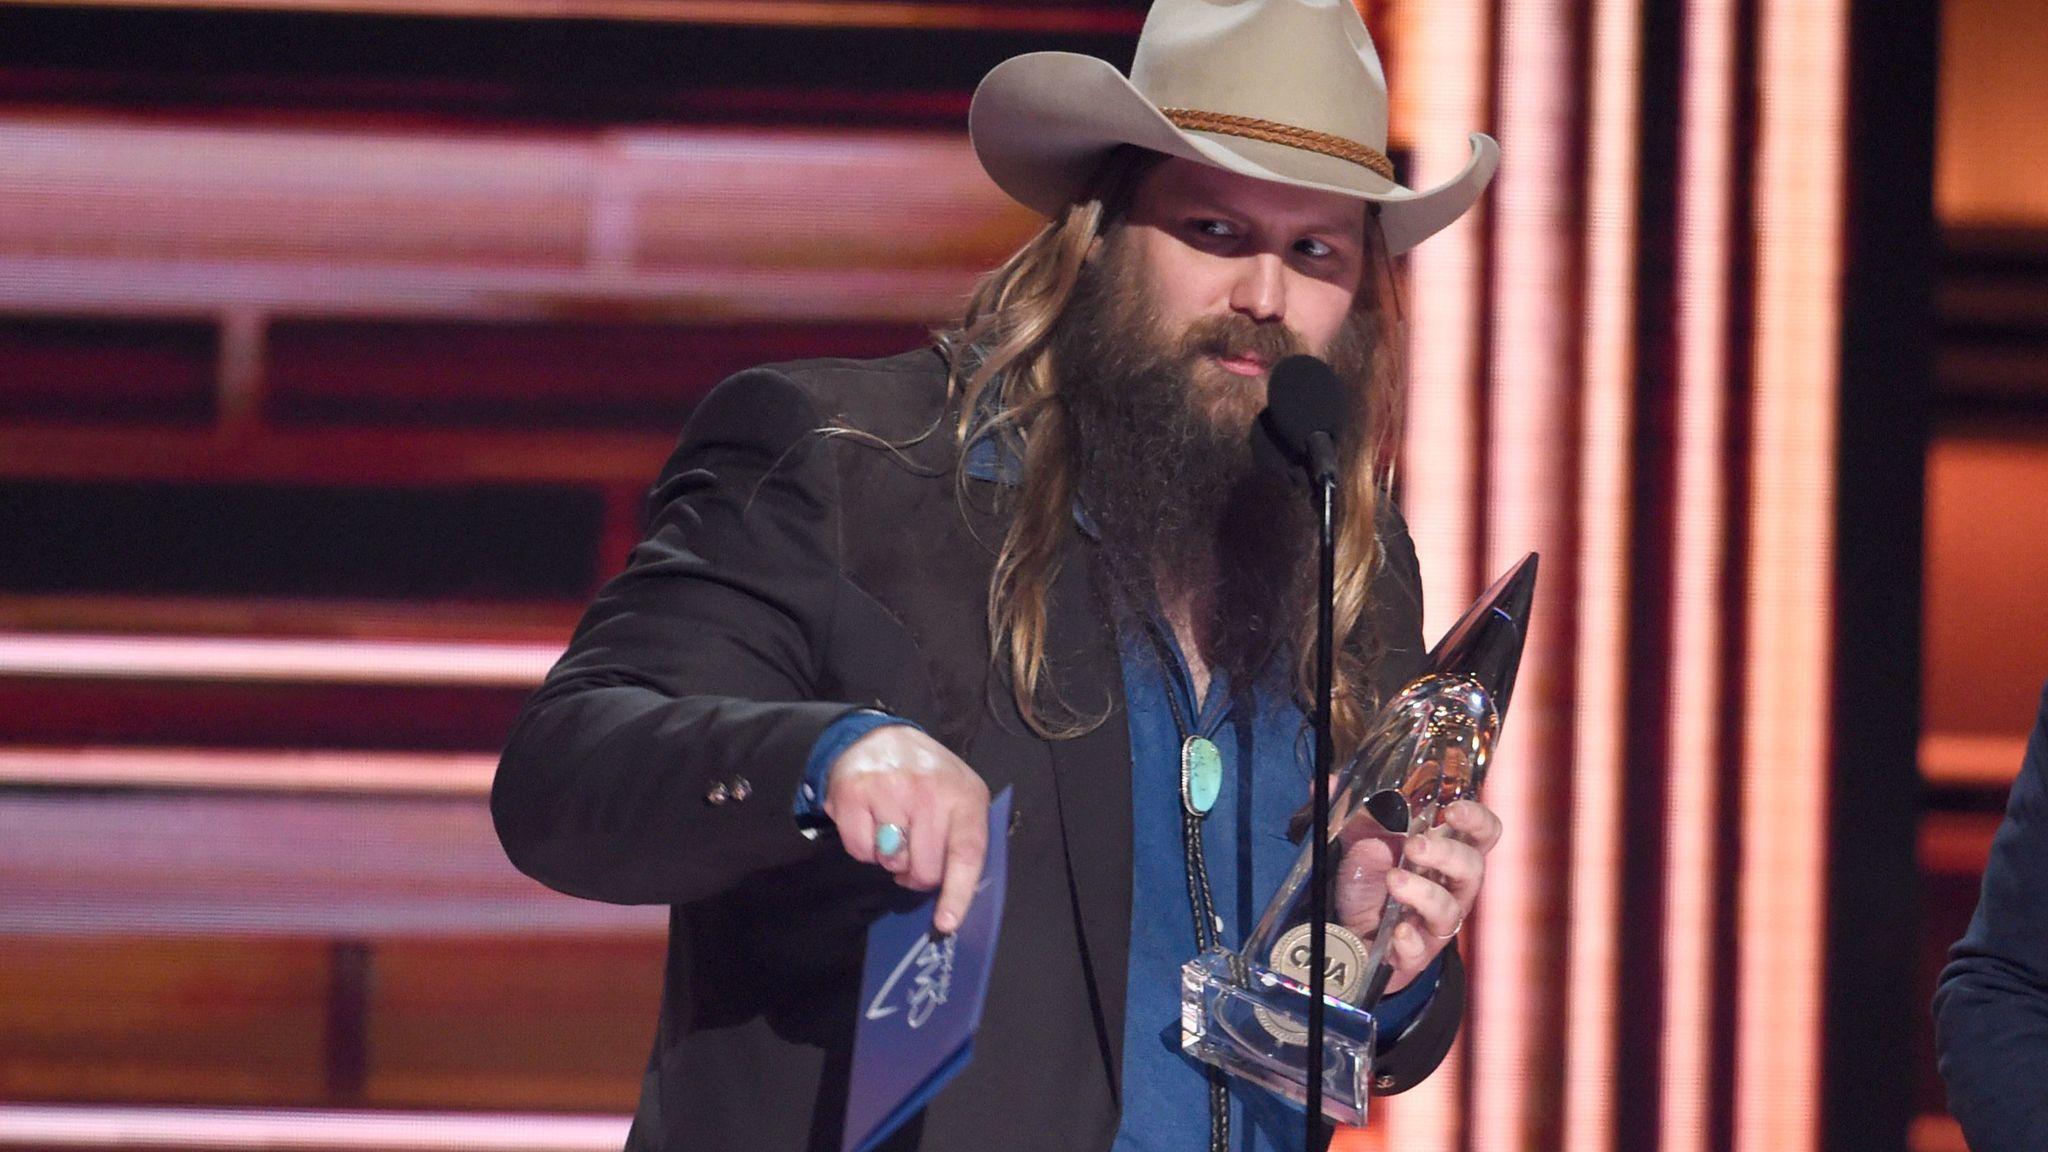 Chris Stapleton accepts the album of the year award at the CMA Awards.